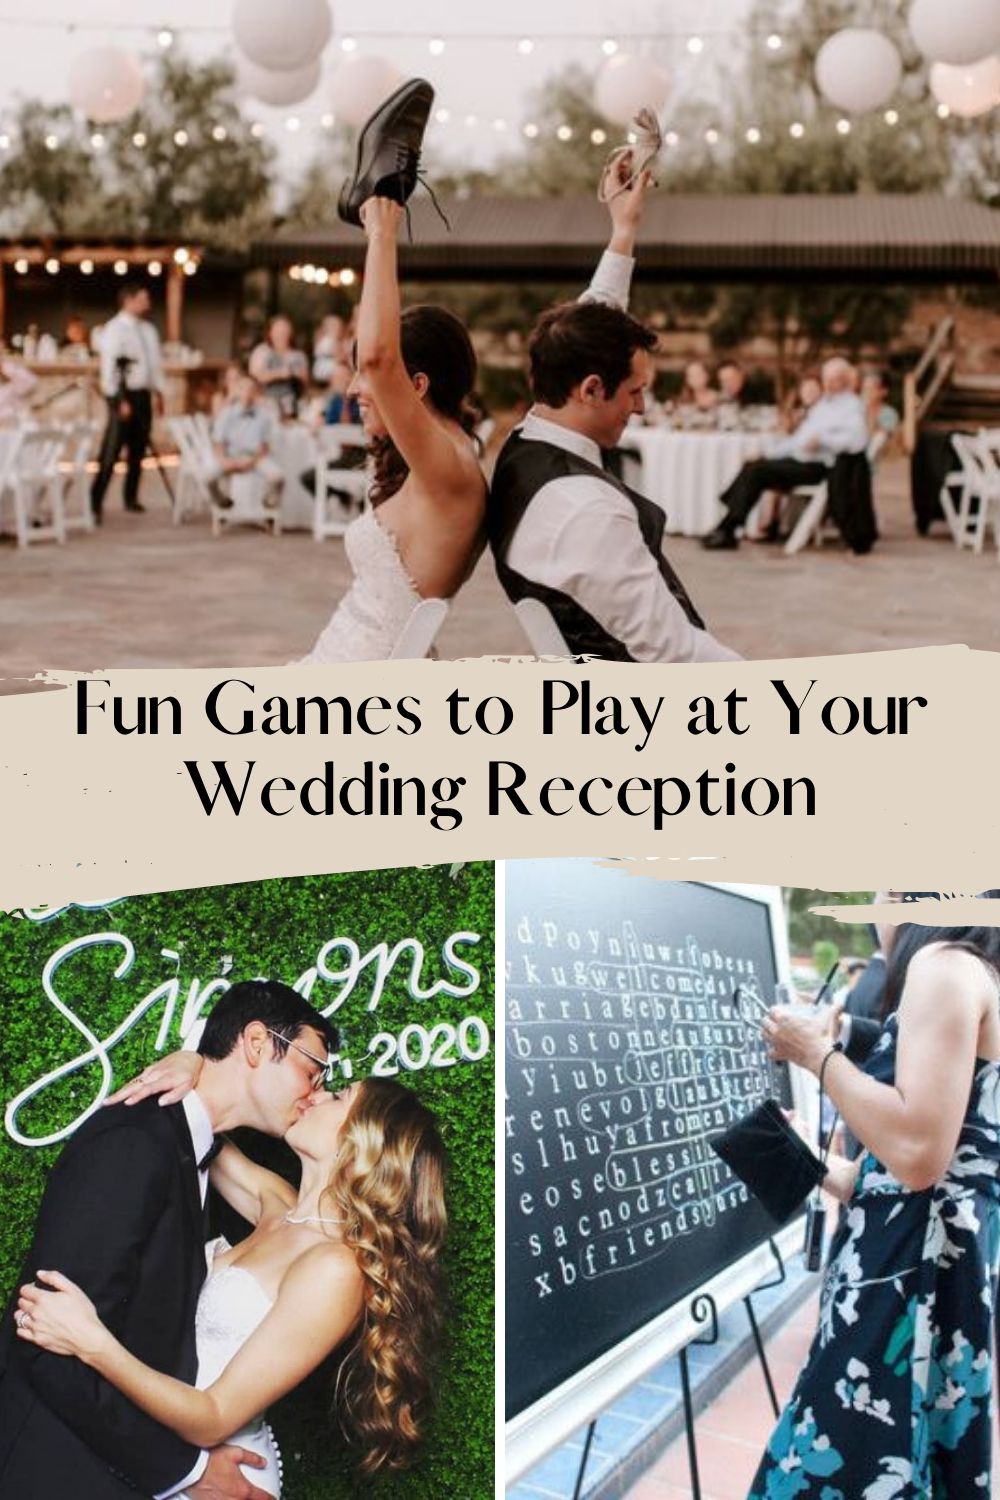 Fun games to play at your wedding reception